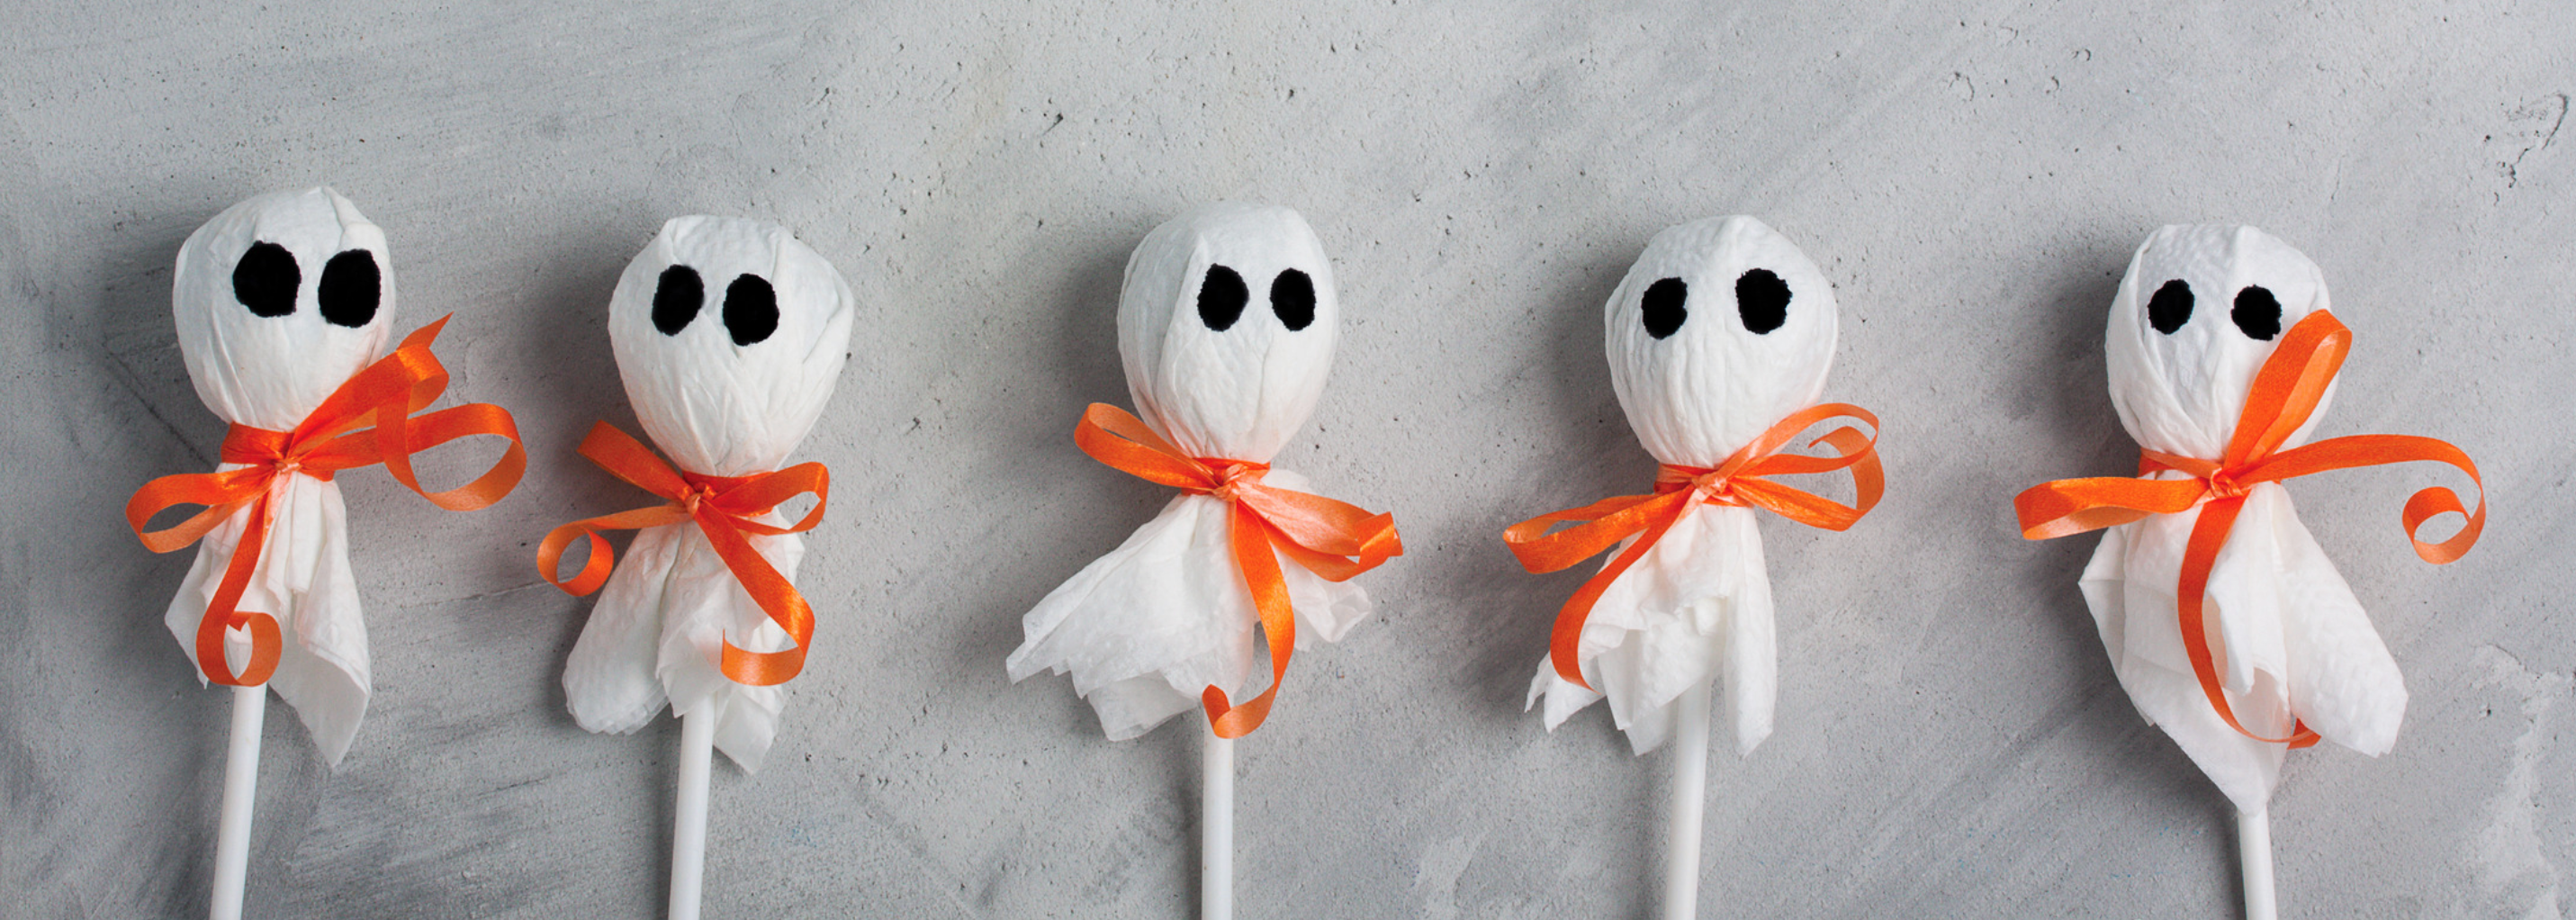 HALLOWEEN CANDIES DIY